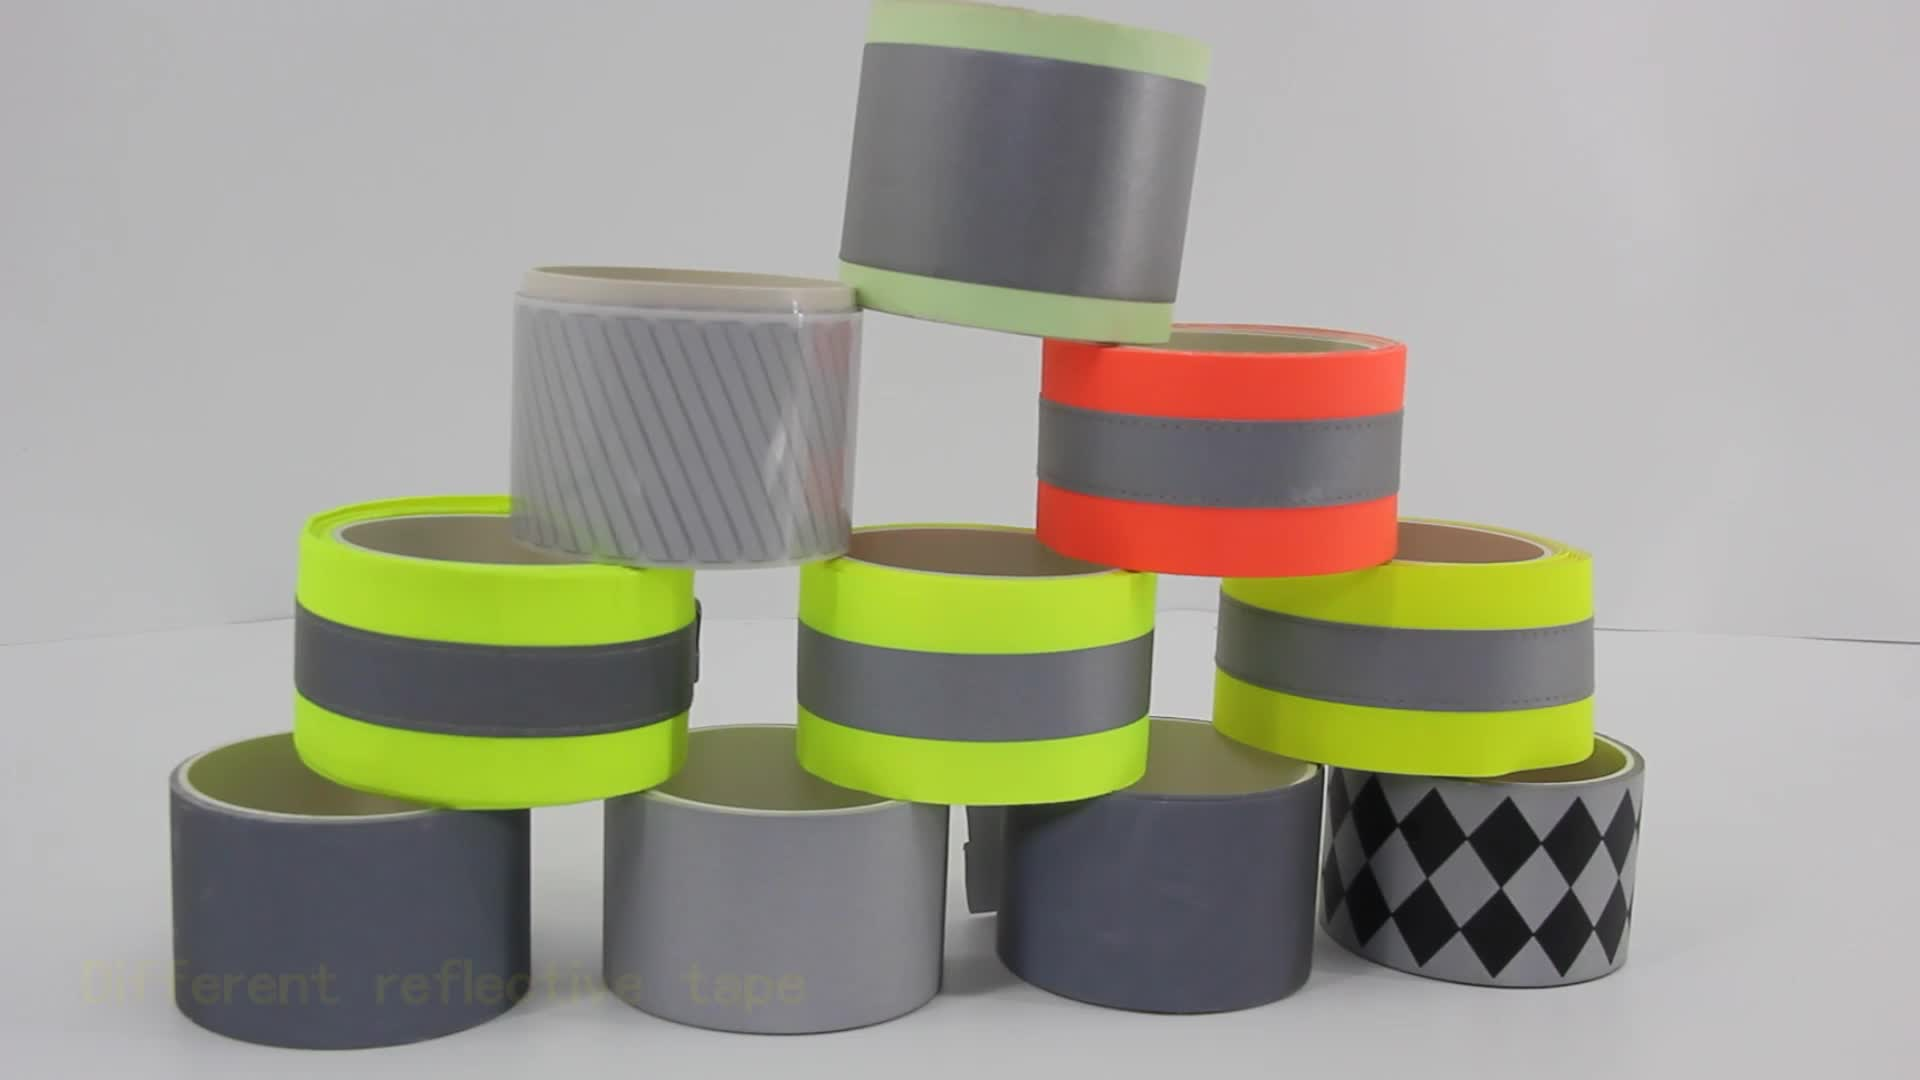 Flame resistance fluorescent reflective tape,yellow-sliver reflective tape for firefighter garment